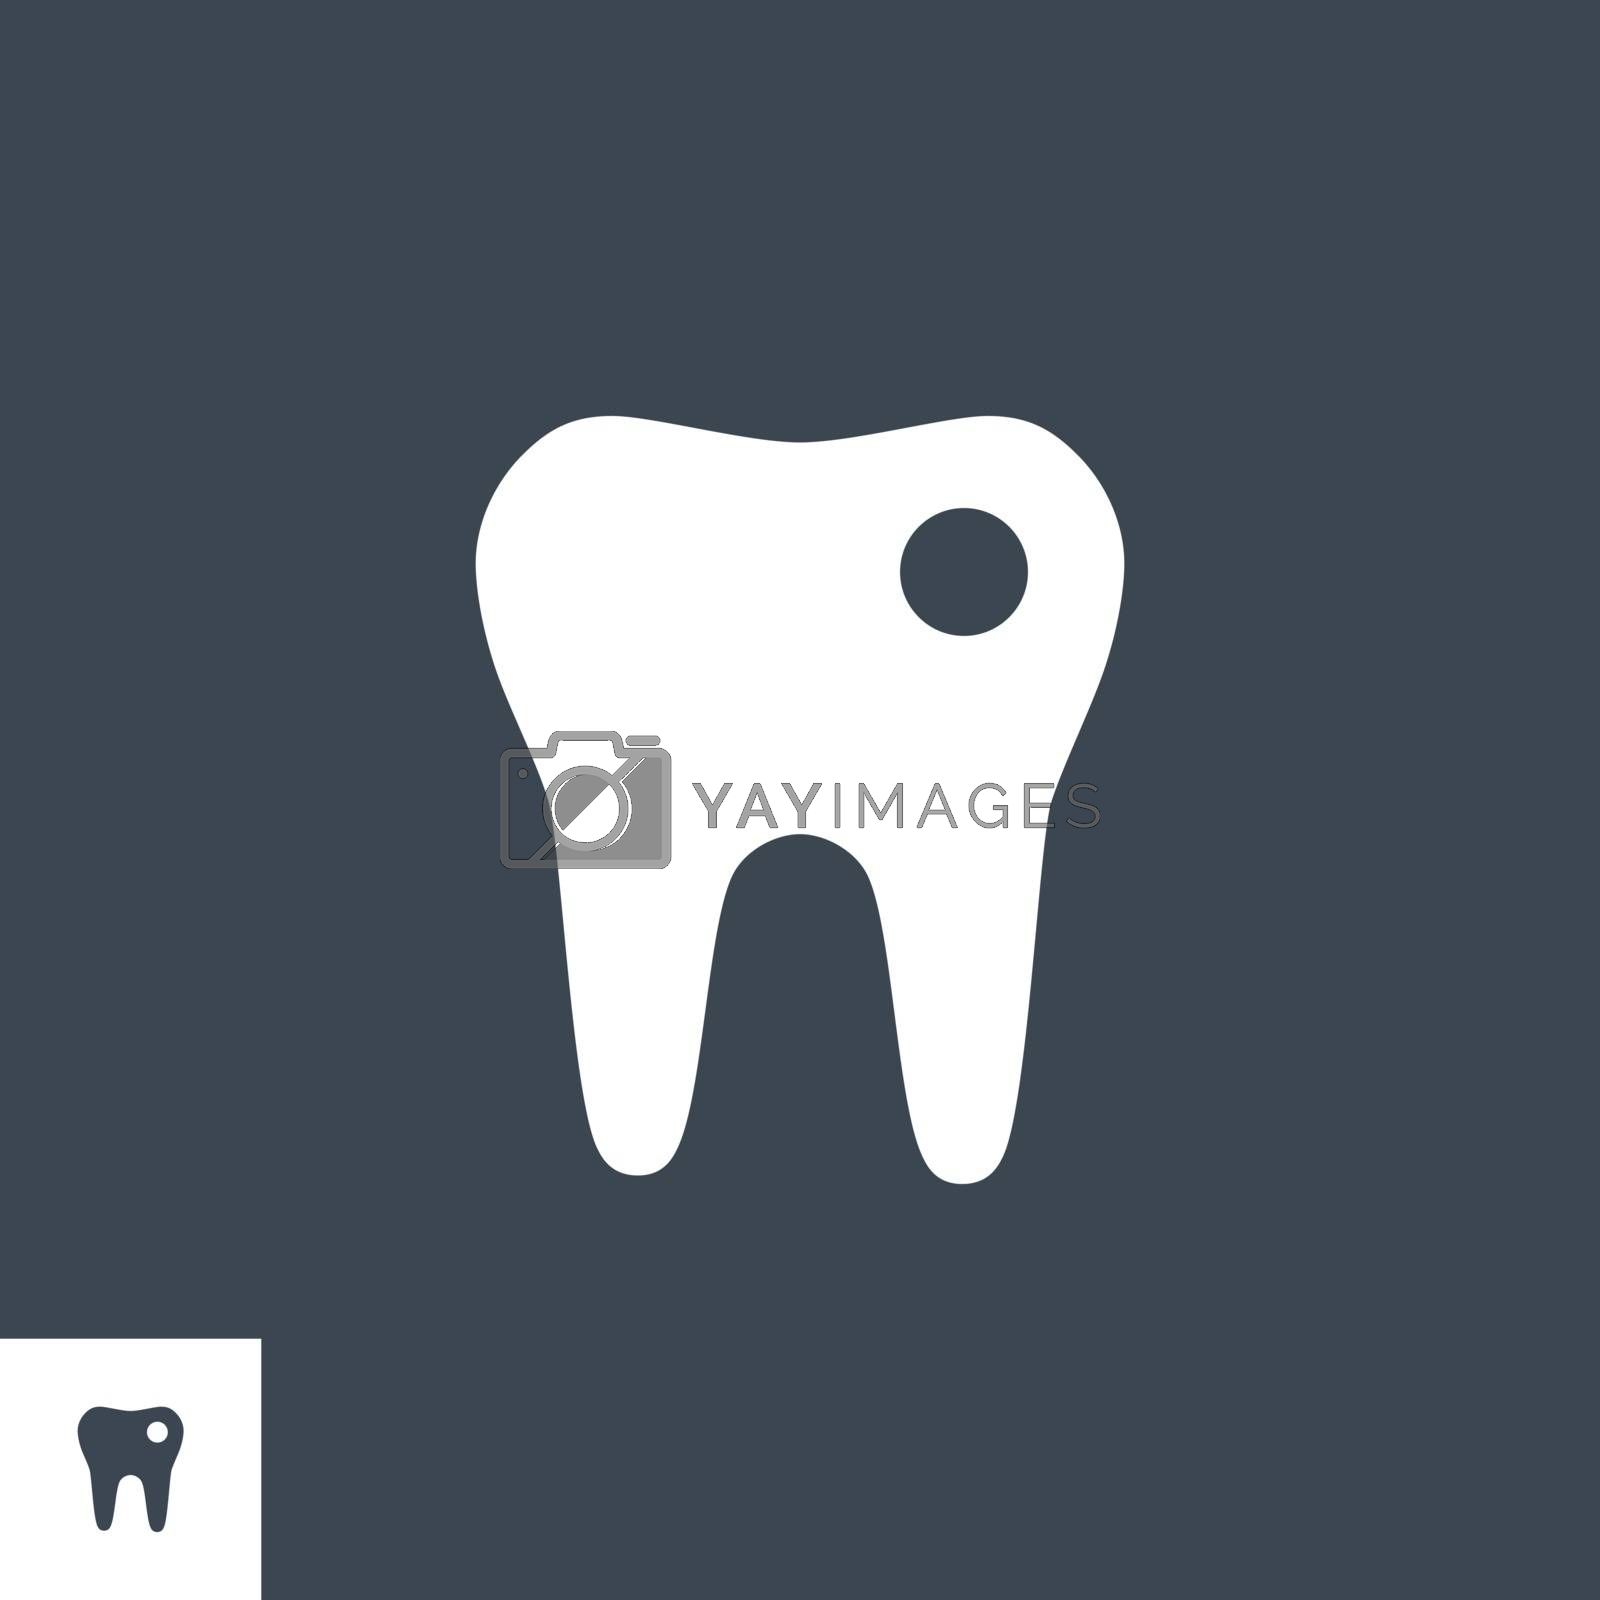 Tooth related vector glyph icon. Isolated on black background. Vector illustration.